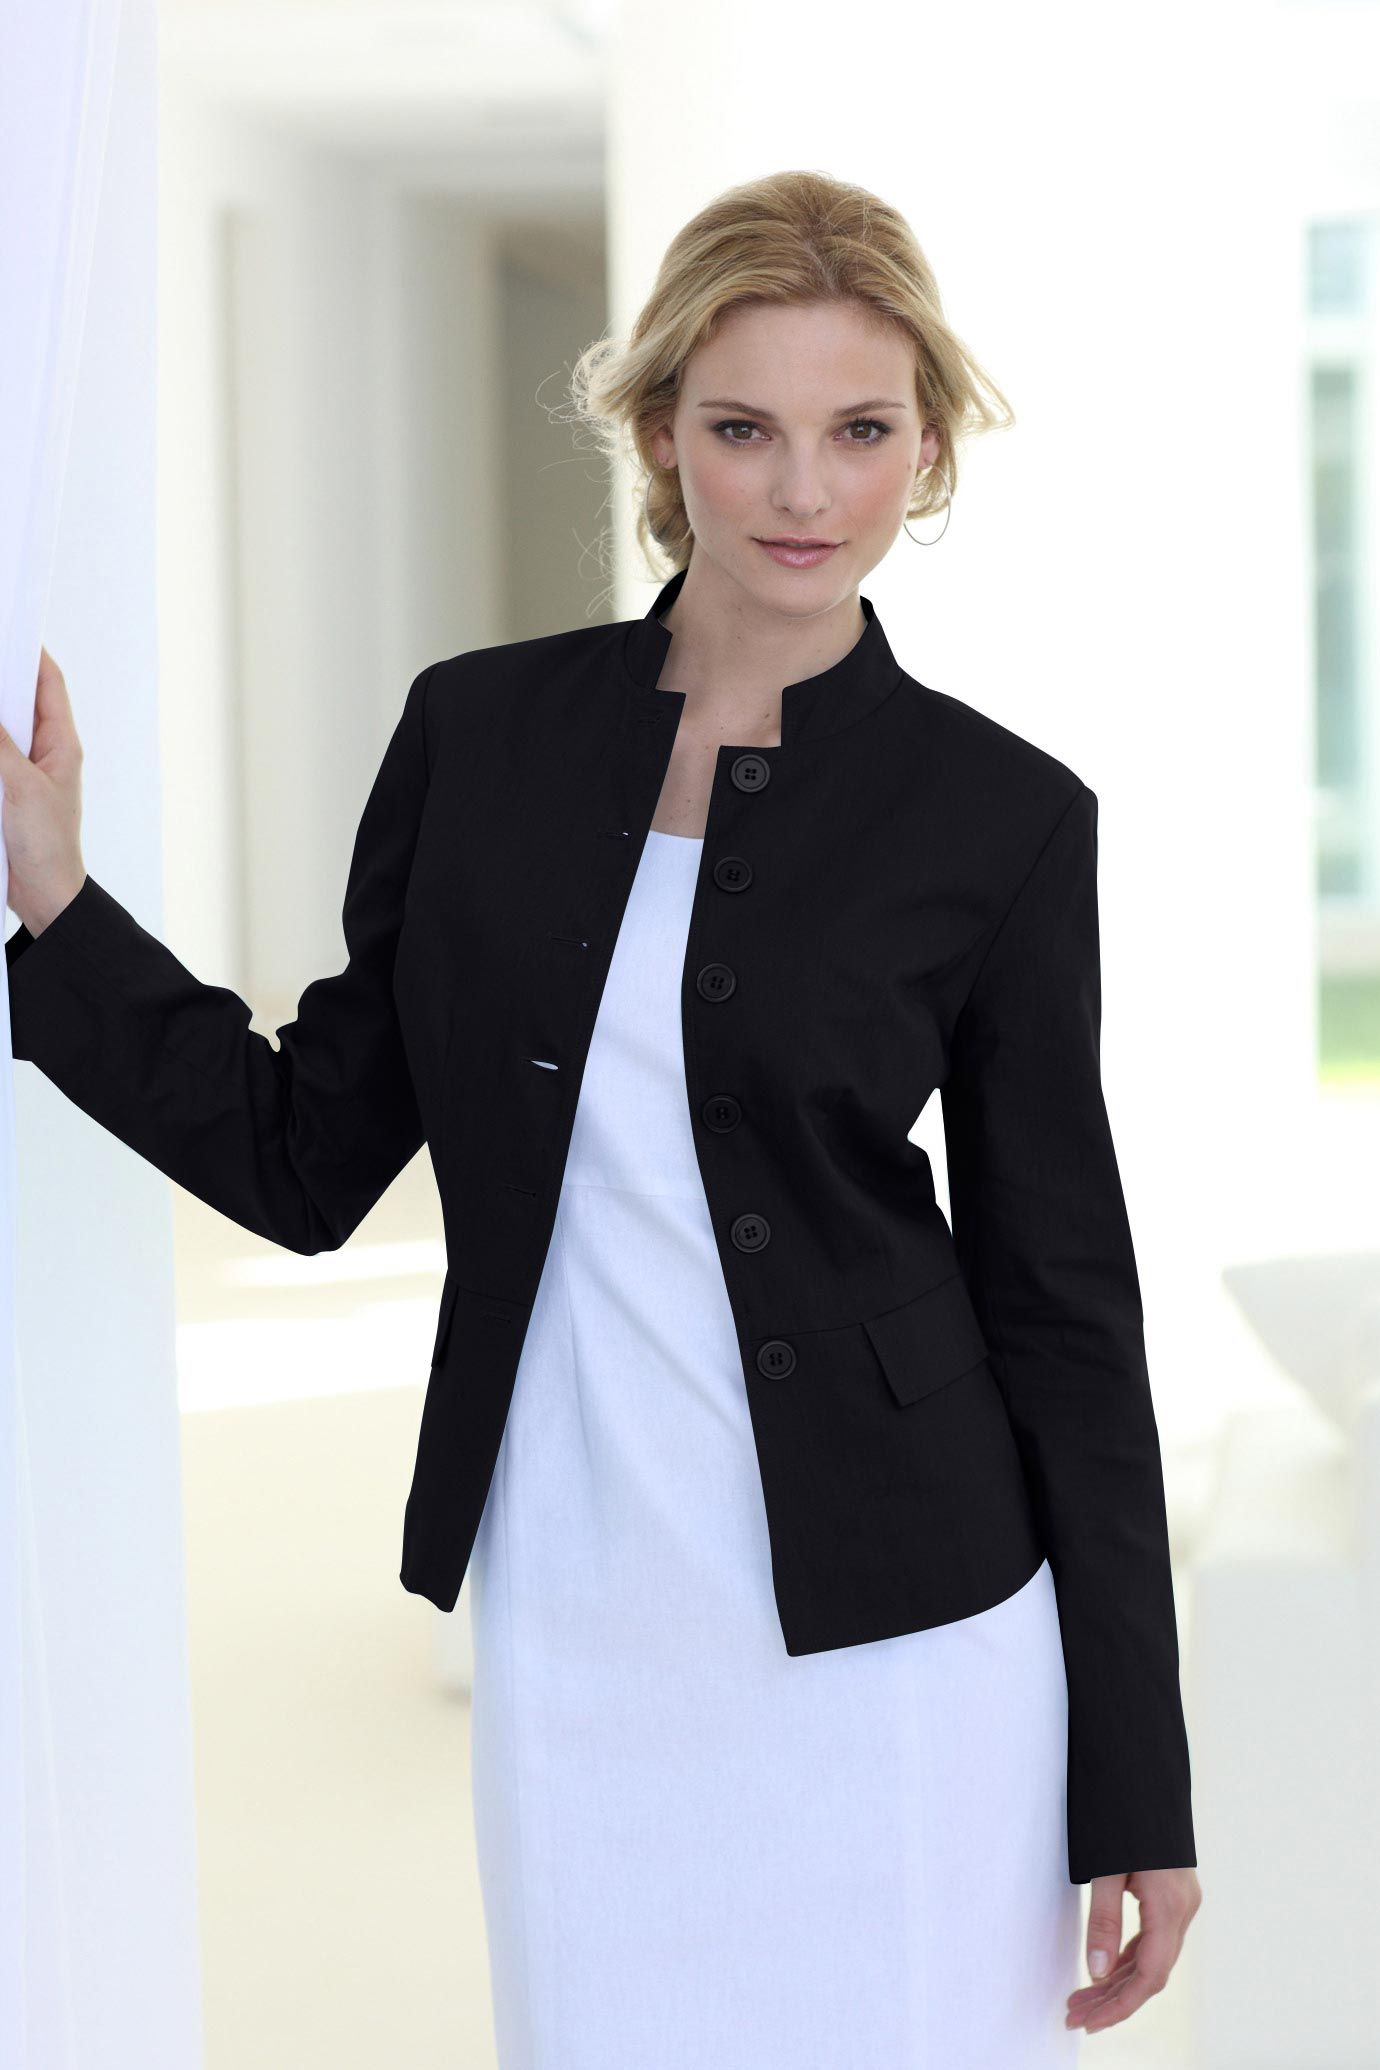 Find a great selection of women's blazers & jackets at getessay2016.tk Shop top brands like Vince Camuto, Topshop, Lafayette and more. Free shipping and returns.